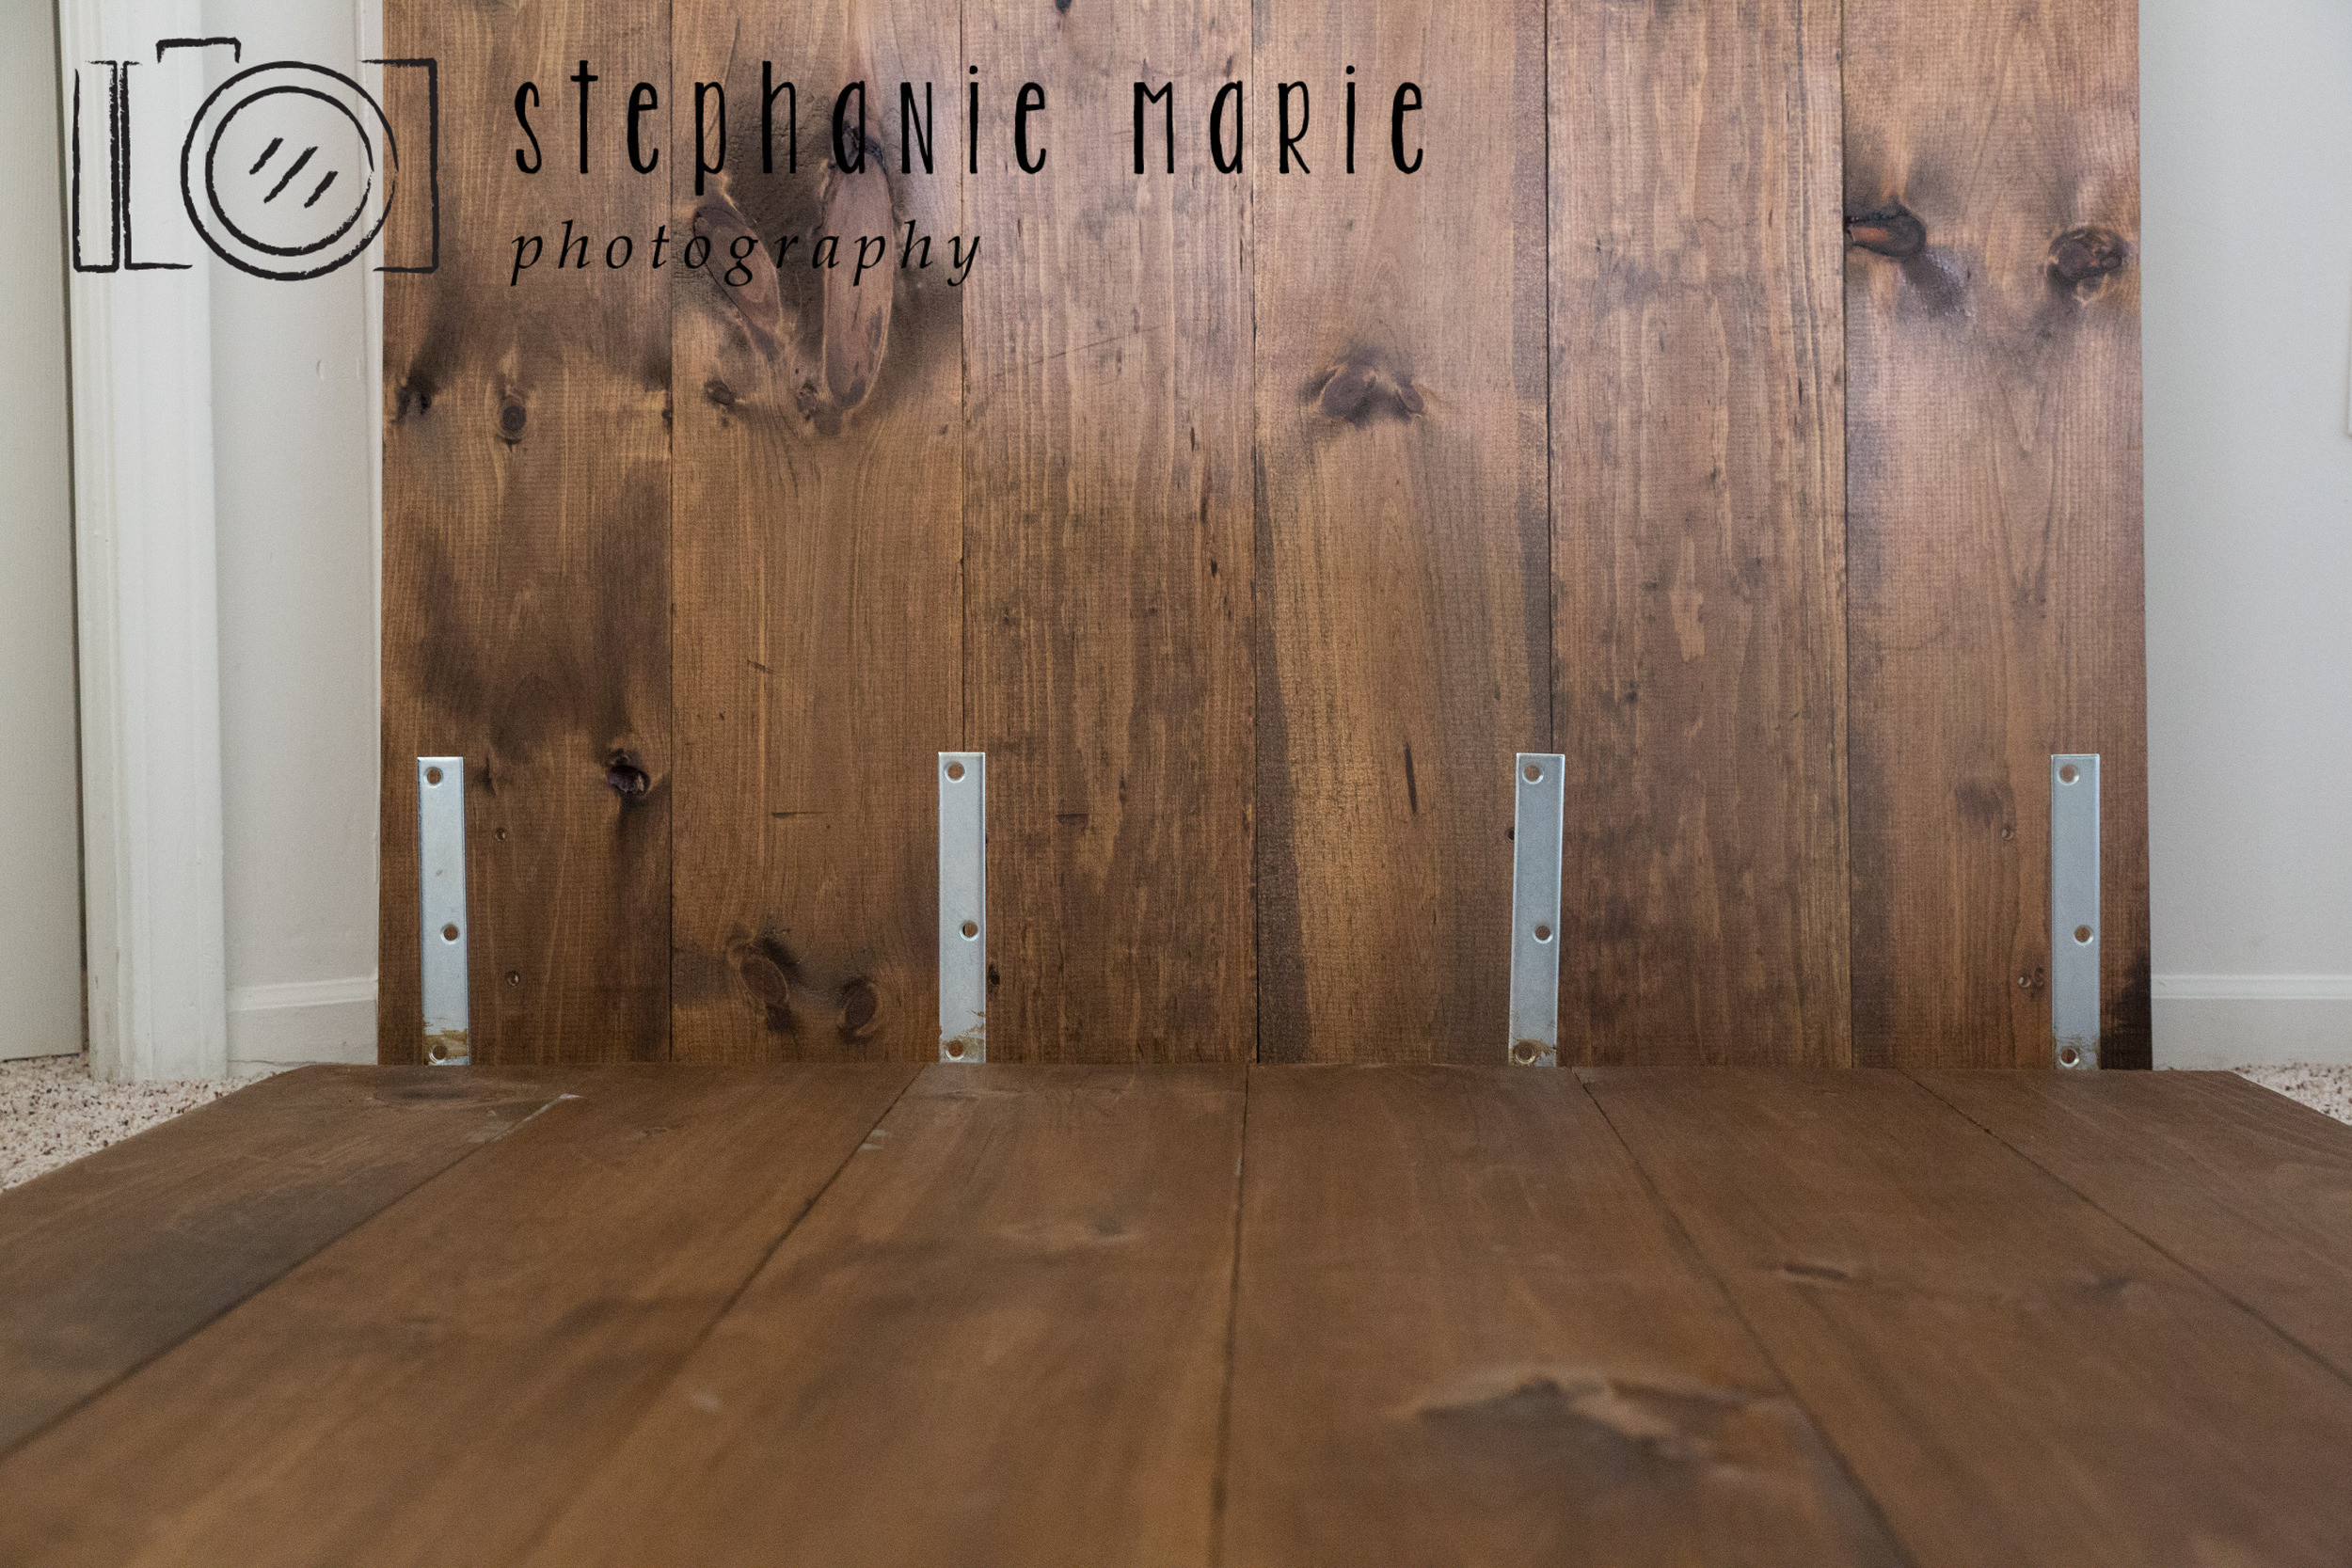 diy hardwood floor cost of diy faux hardwood wall floor stephanie marie photography with regard to how to diy photography faux wood floor wall backdrop prop for photographers